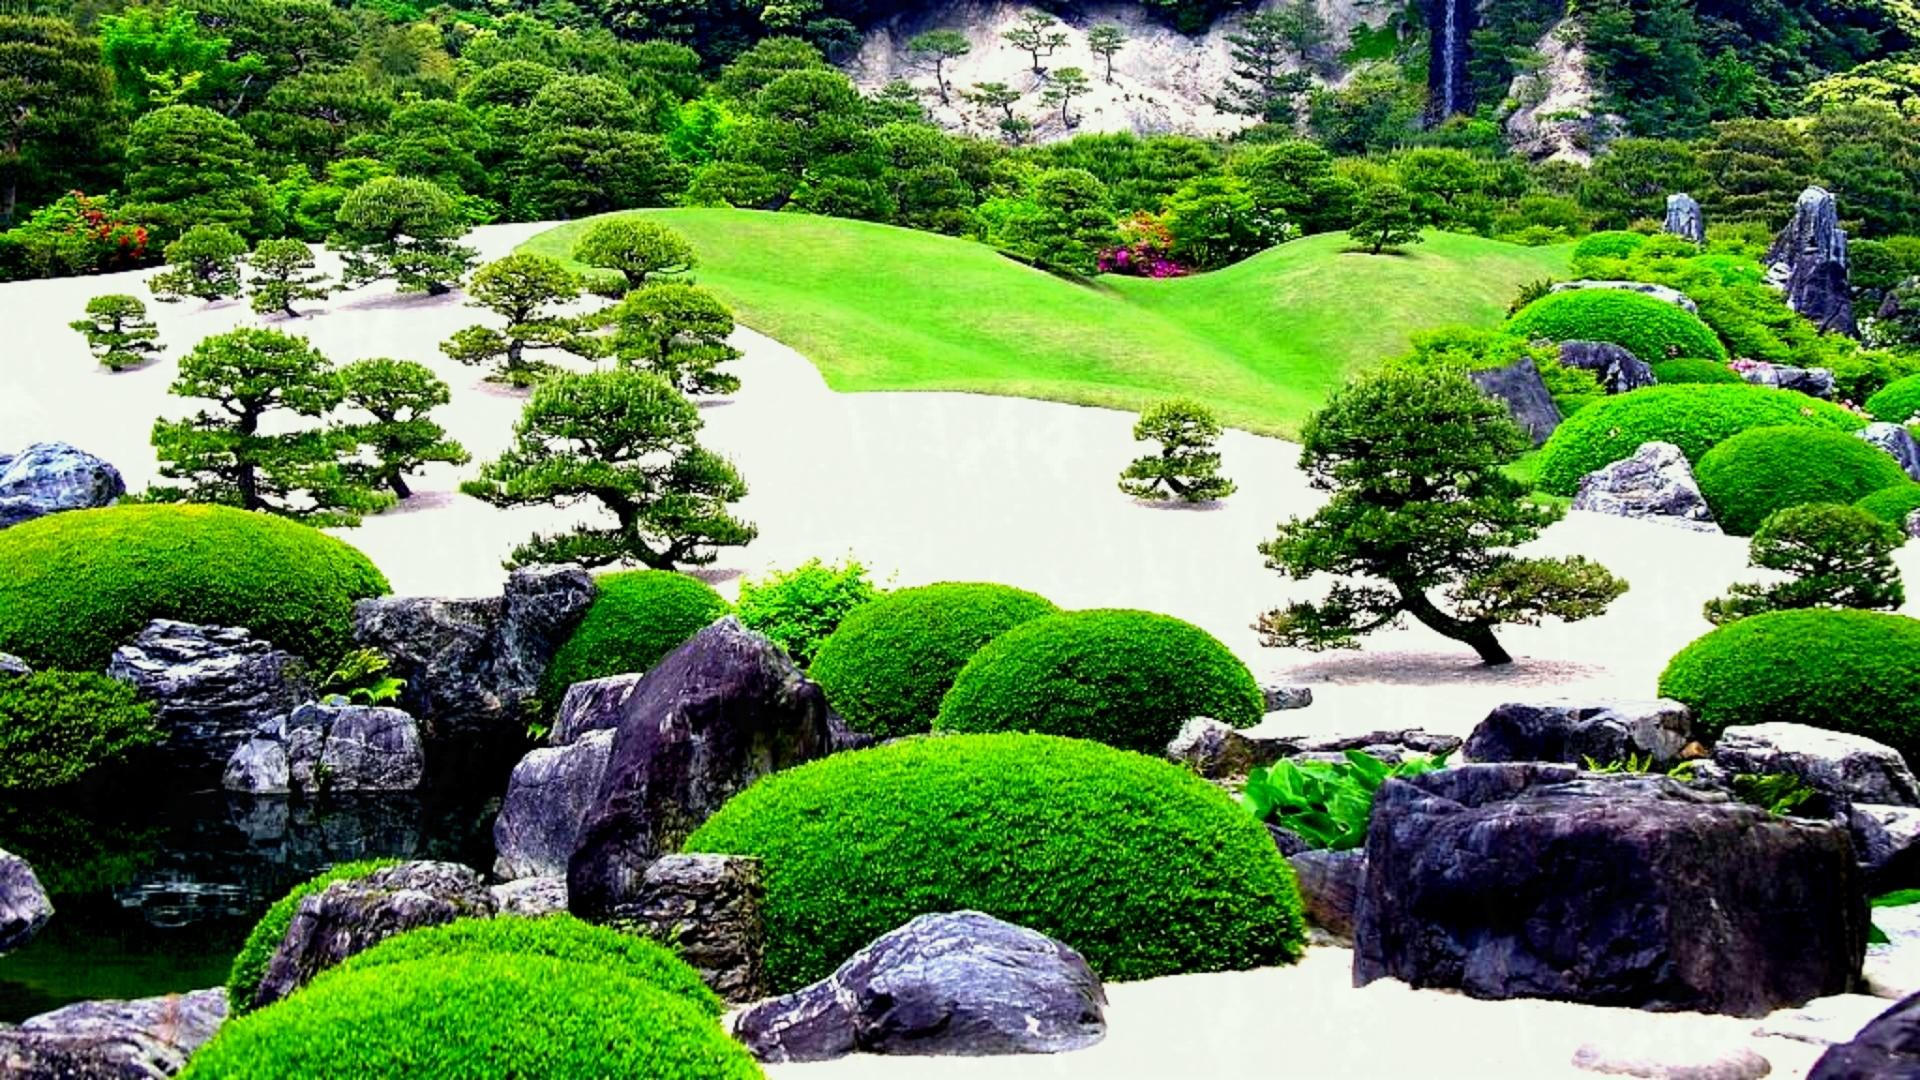 Res: 1920x1080, Japanese Garden Wallpapers Wide Outdoors Wallpaper P On Hd